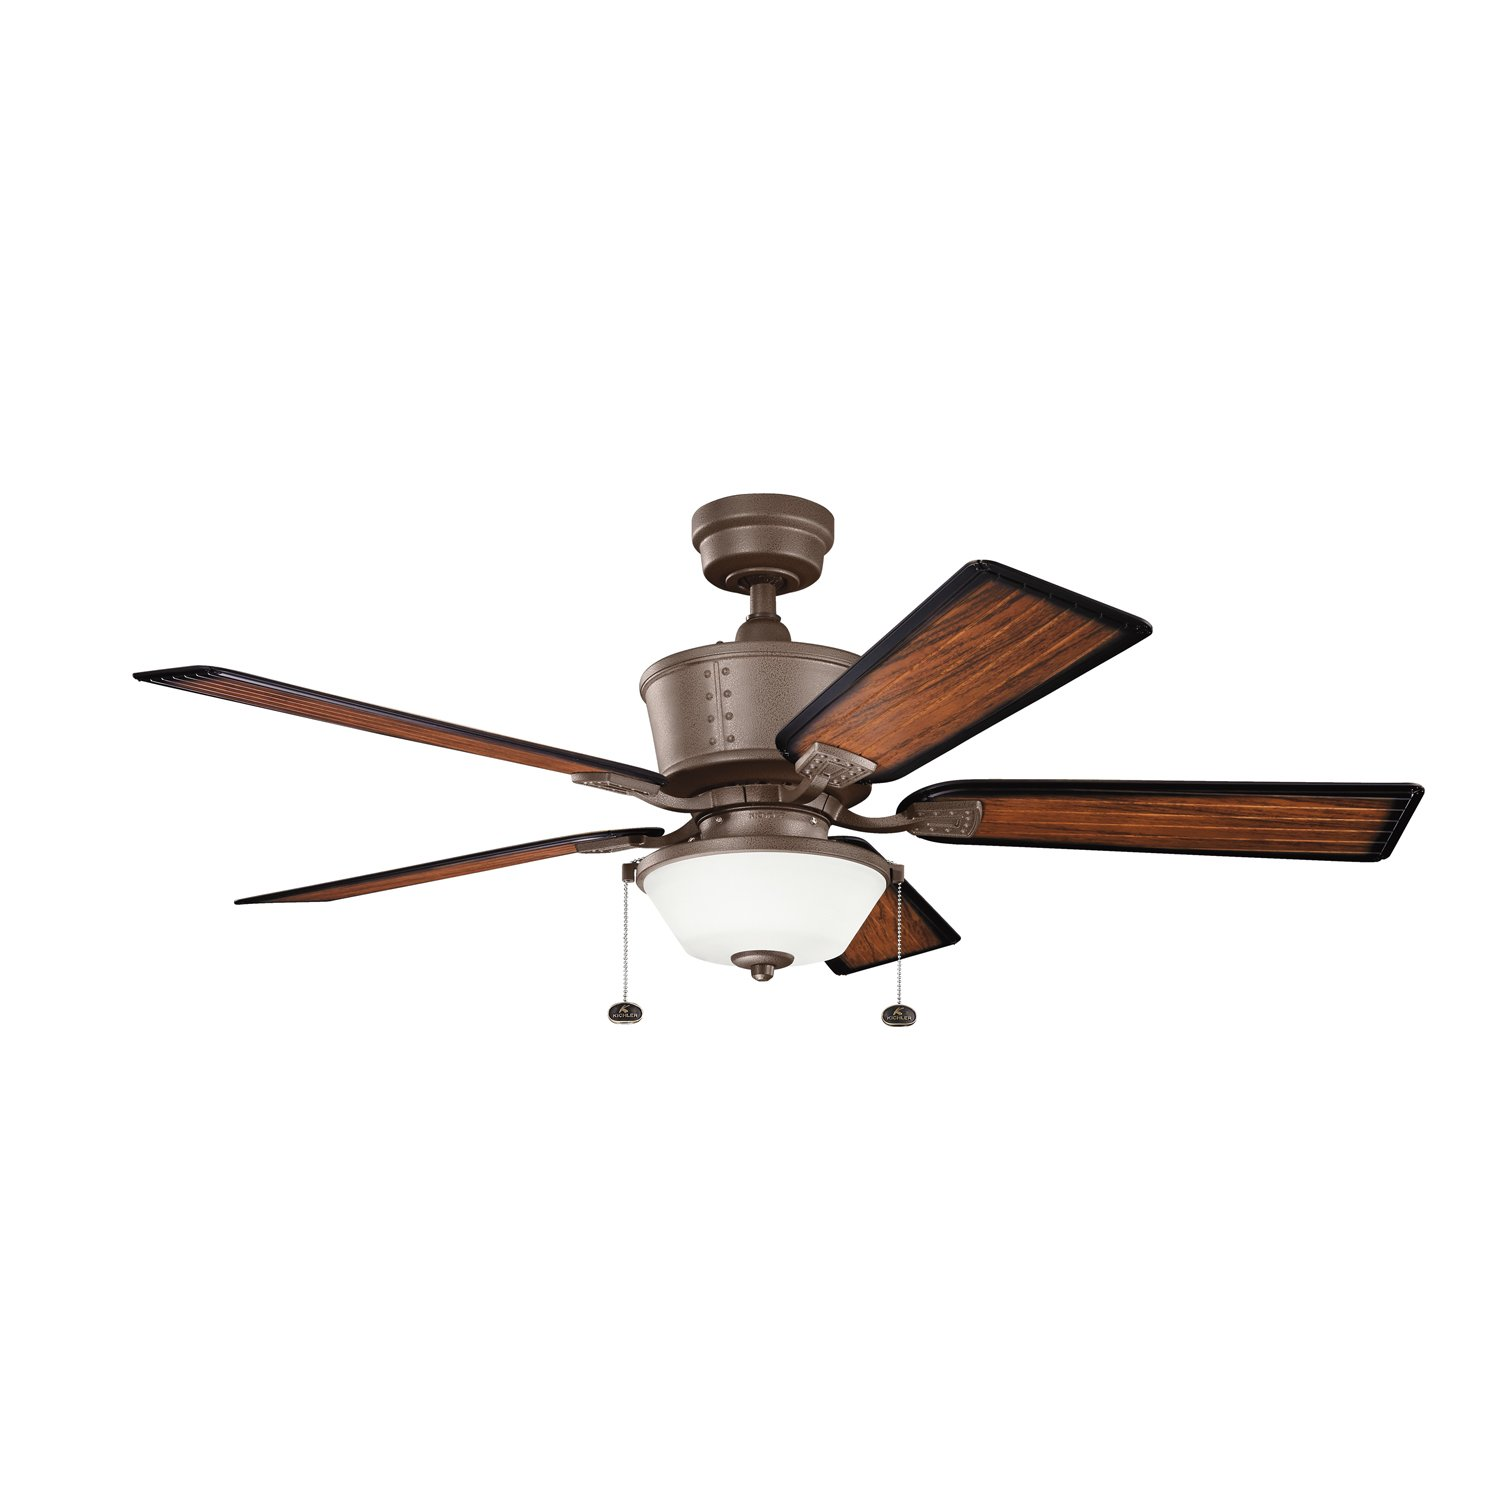 Kichler Lighting 300162TZP Cates 52-Inch Wet Location Ceiling Fan, Tannery Bronze Powder Coat Finish with ABS Blades and Etched Glass